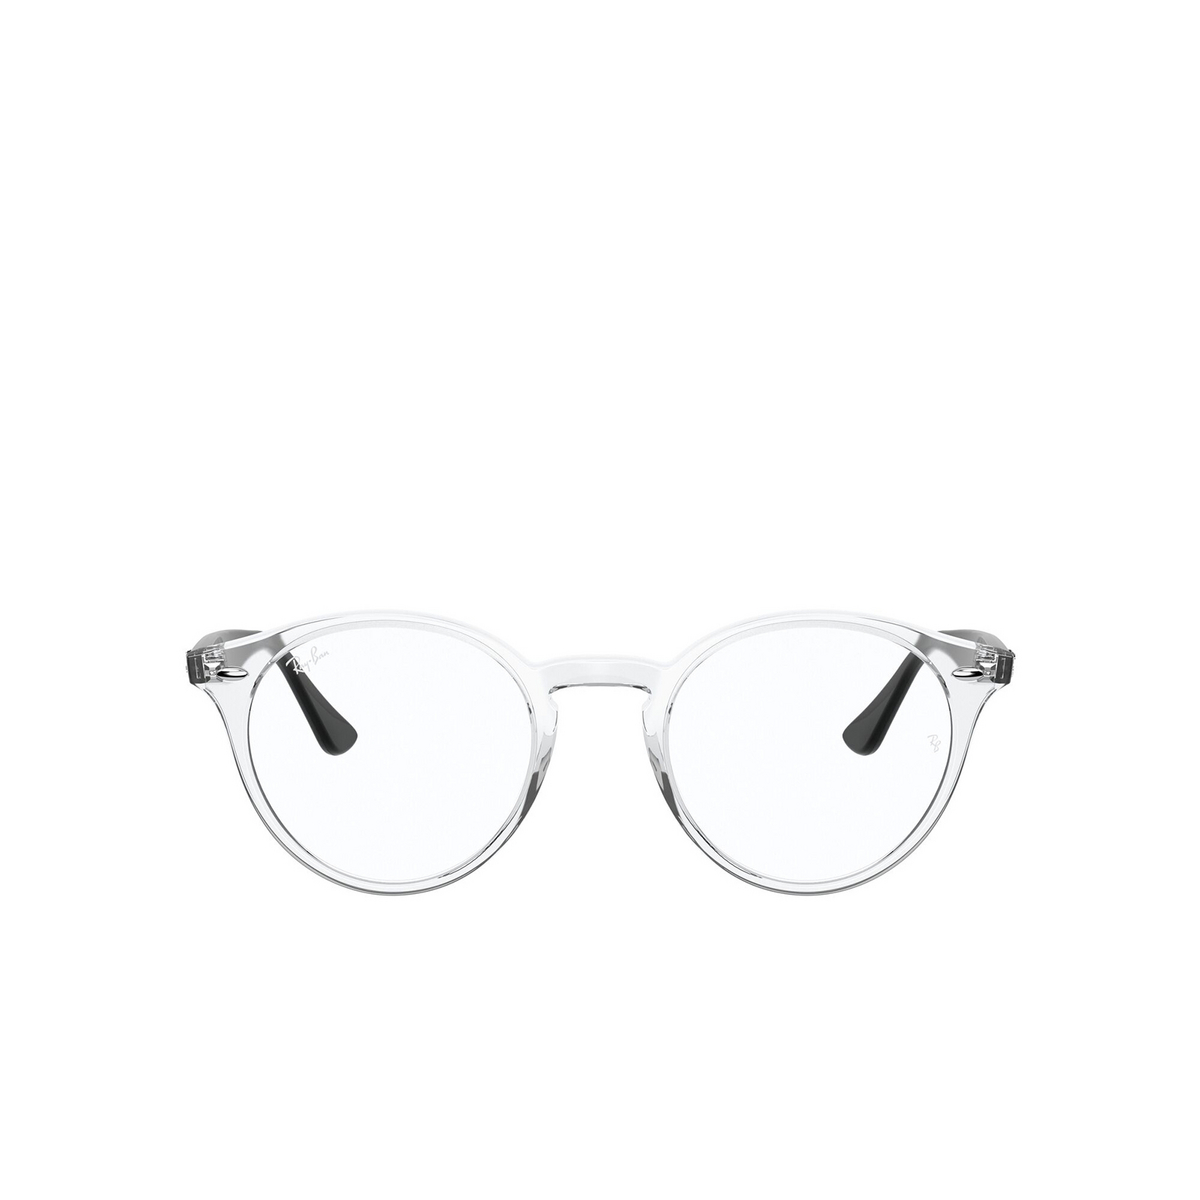 Ray-Ban® Round Eyeglasses: RX2180V color Transparent 5943 - front view.